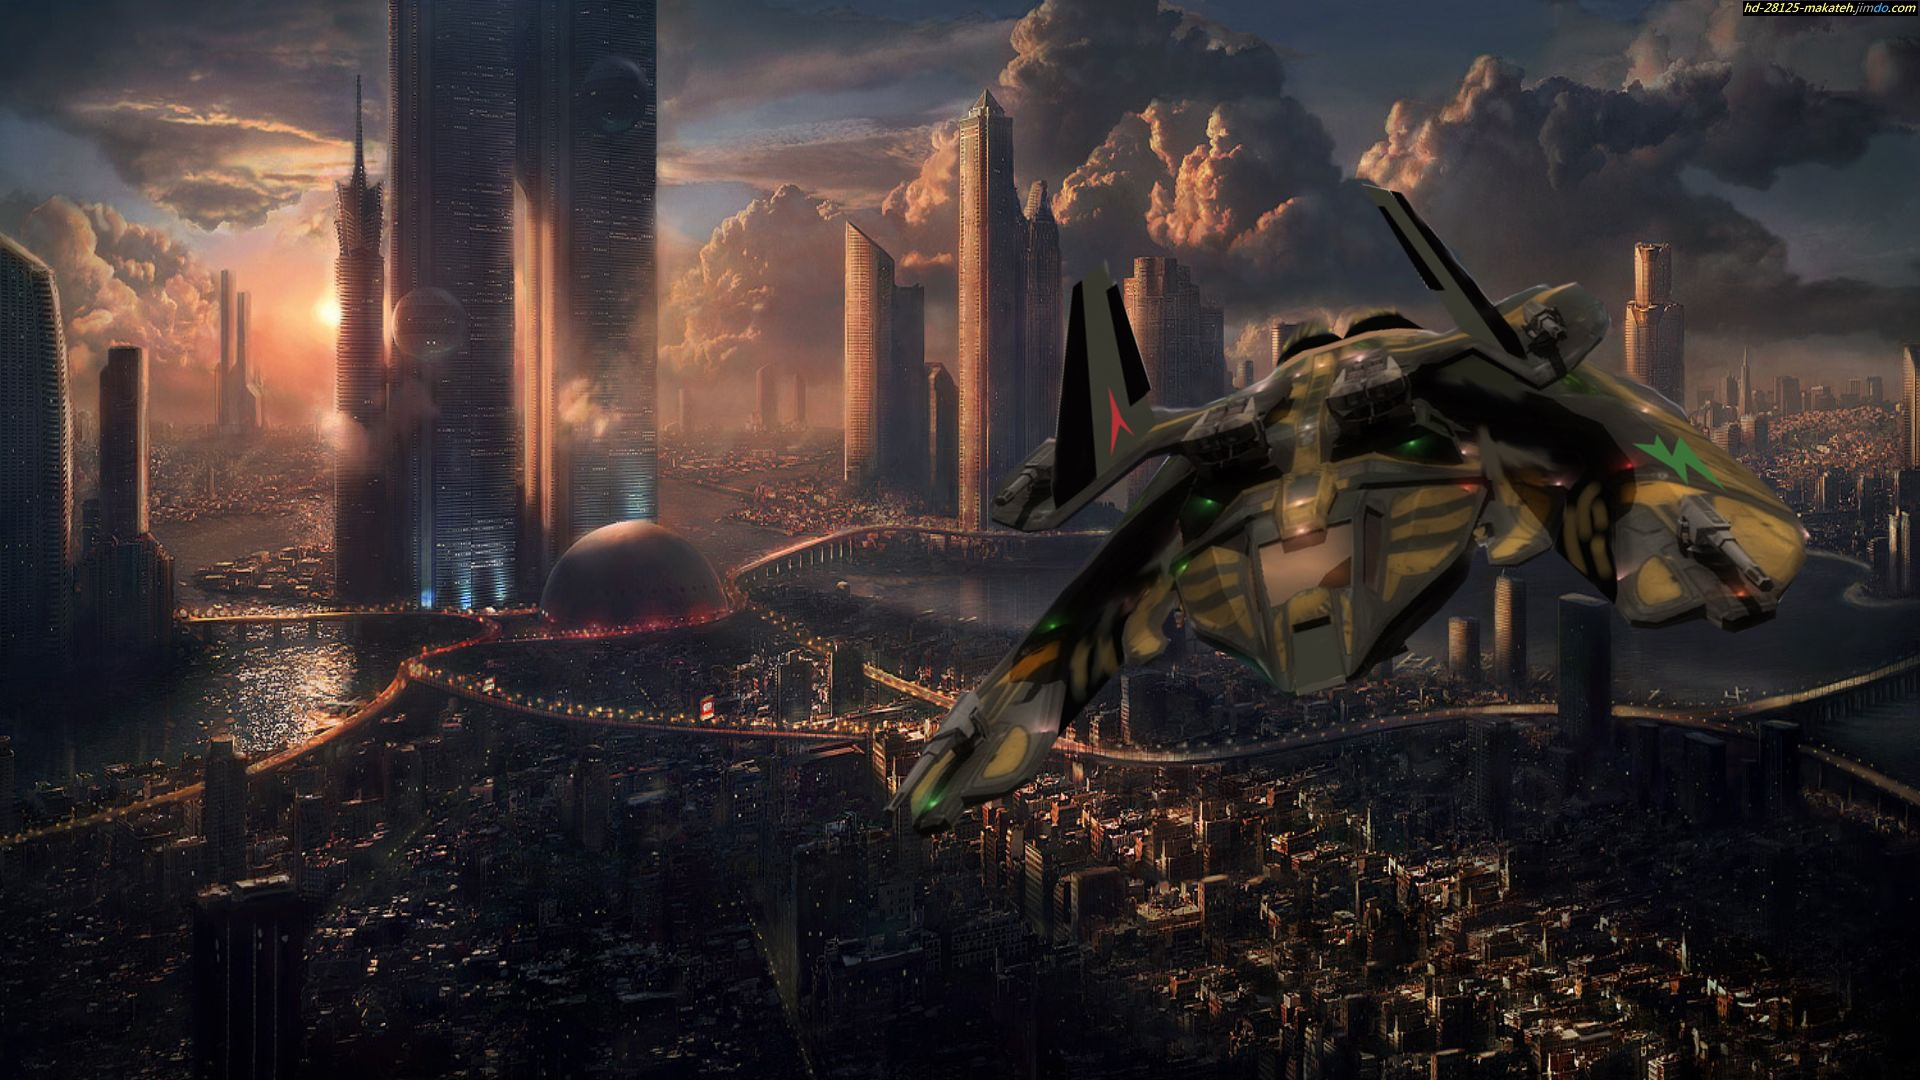 sci fi cities on other planets - photo #21